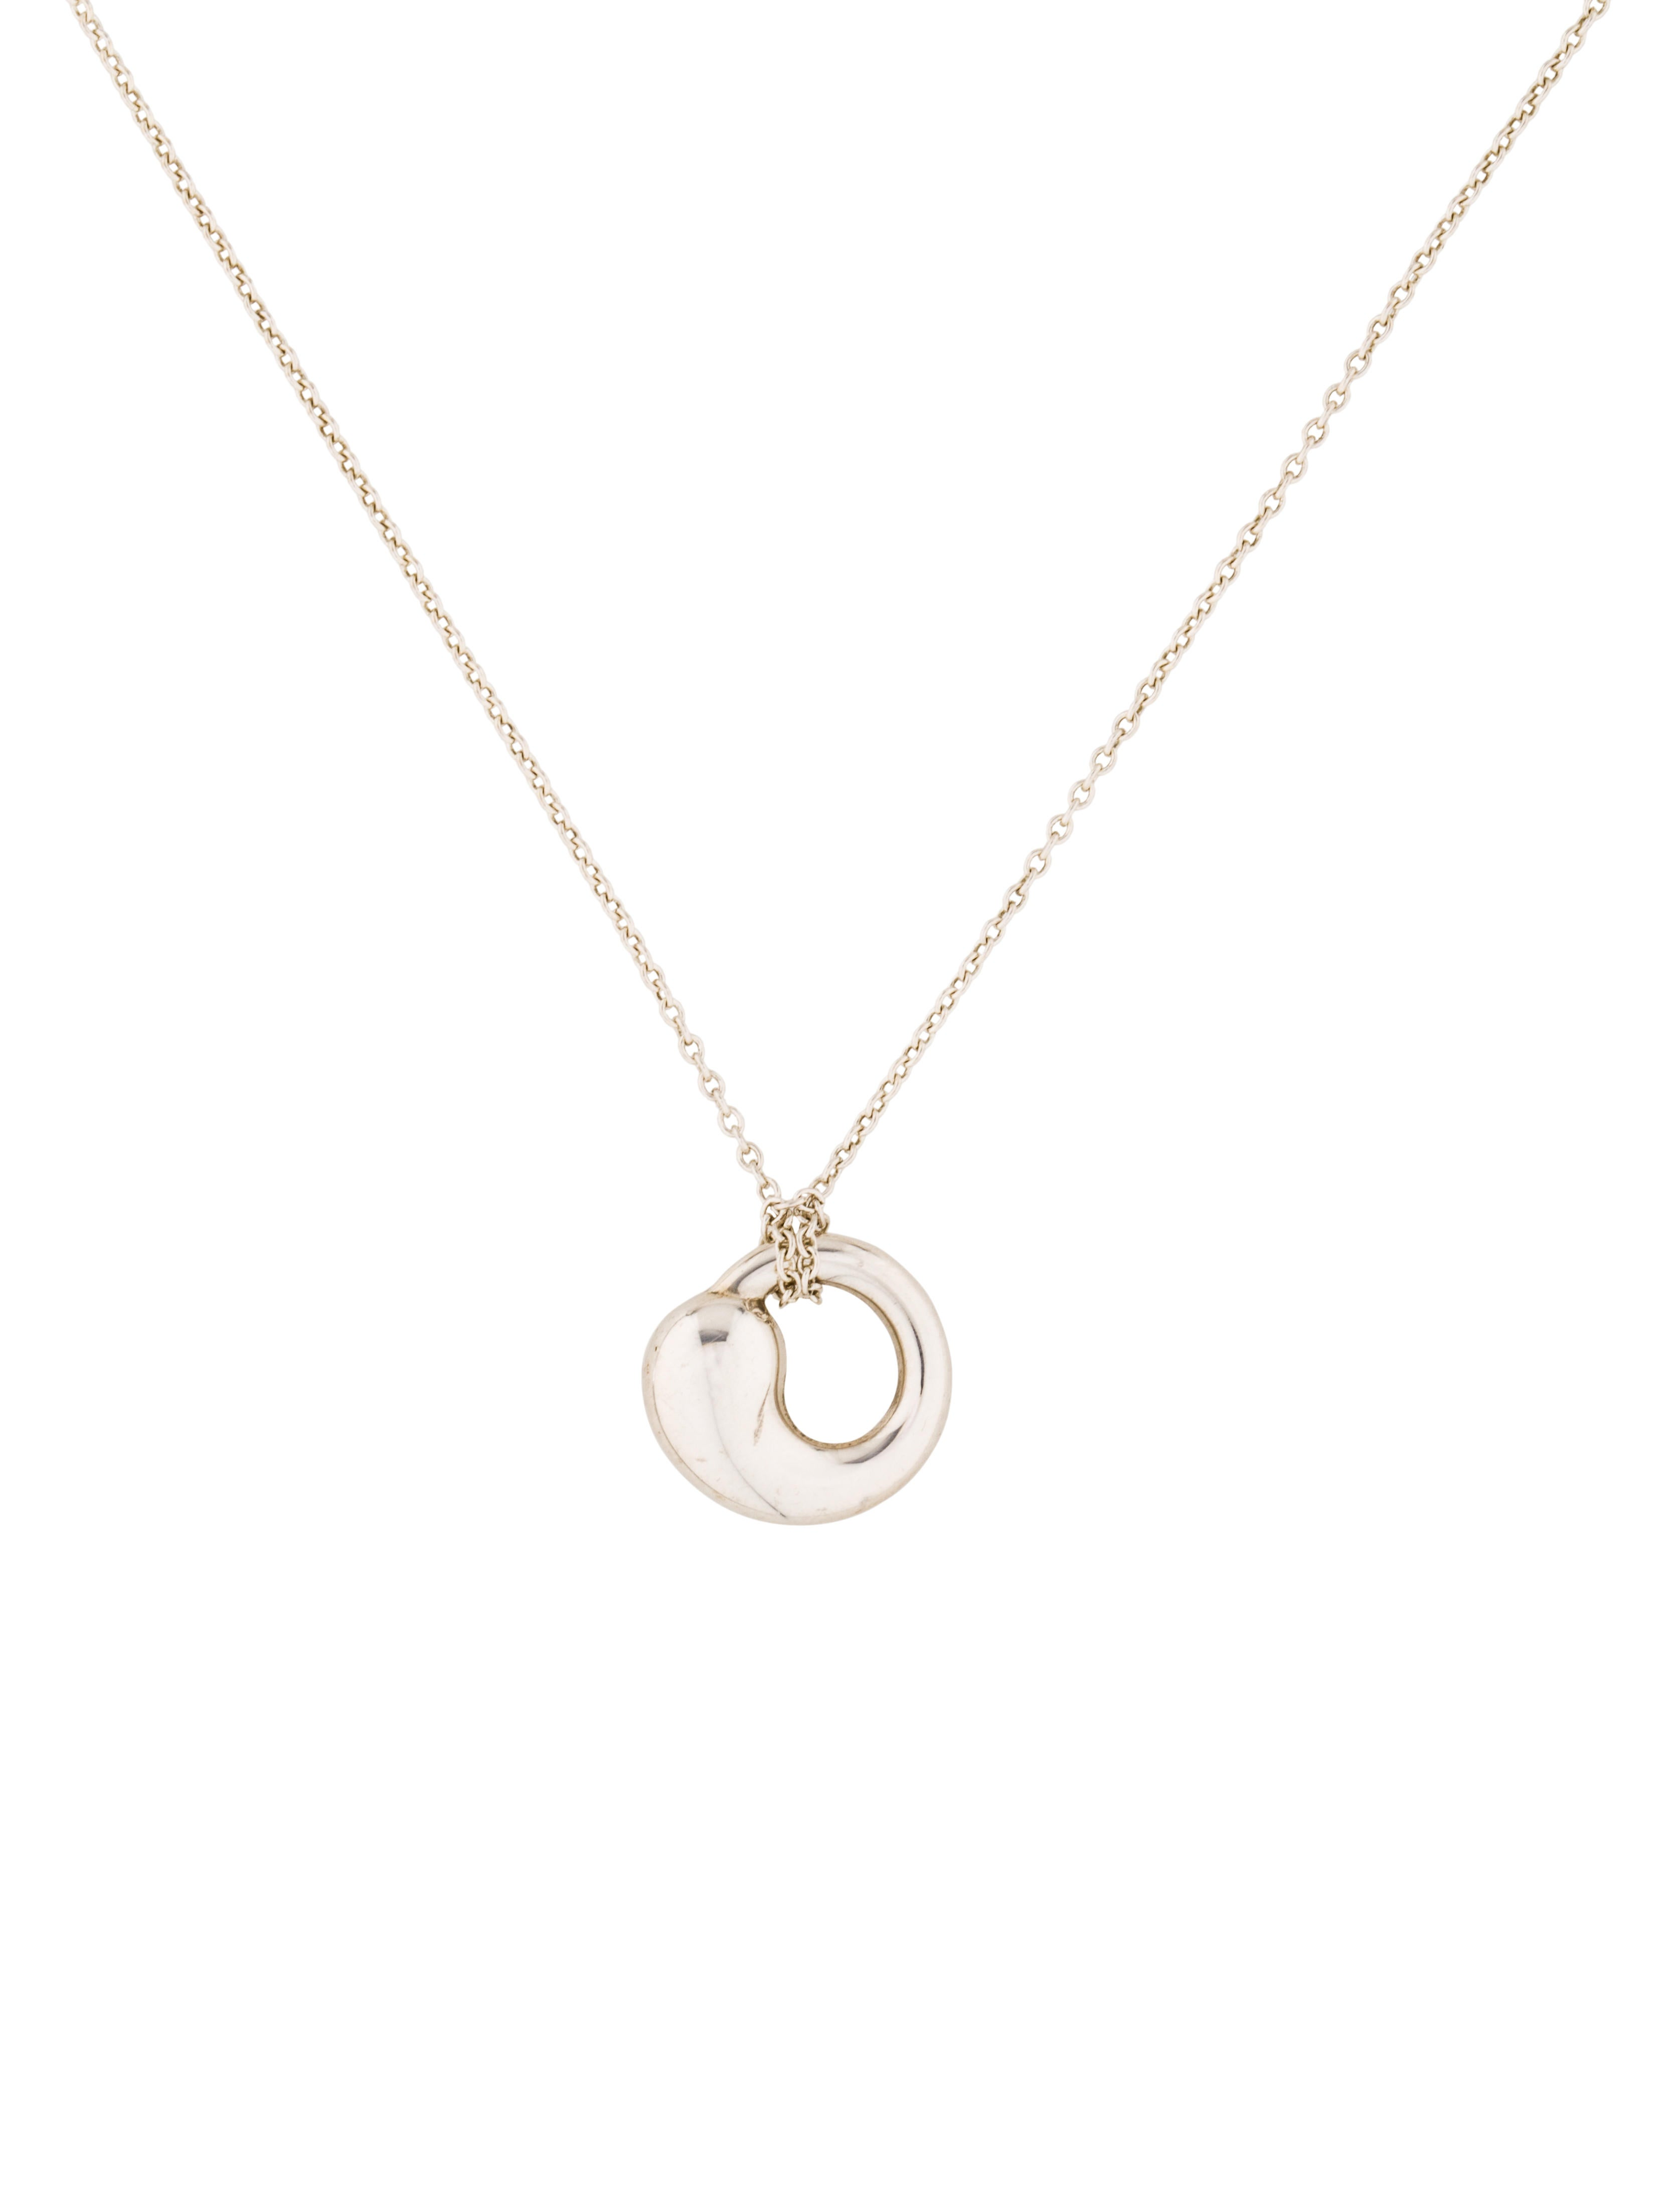 Tiffany co eternal circle pendant necklace necklaces tif57823 eternal circle pendant necklace mozeypictures Image collections